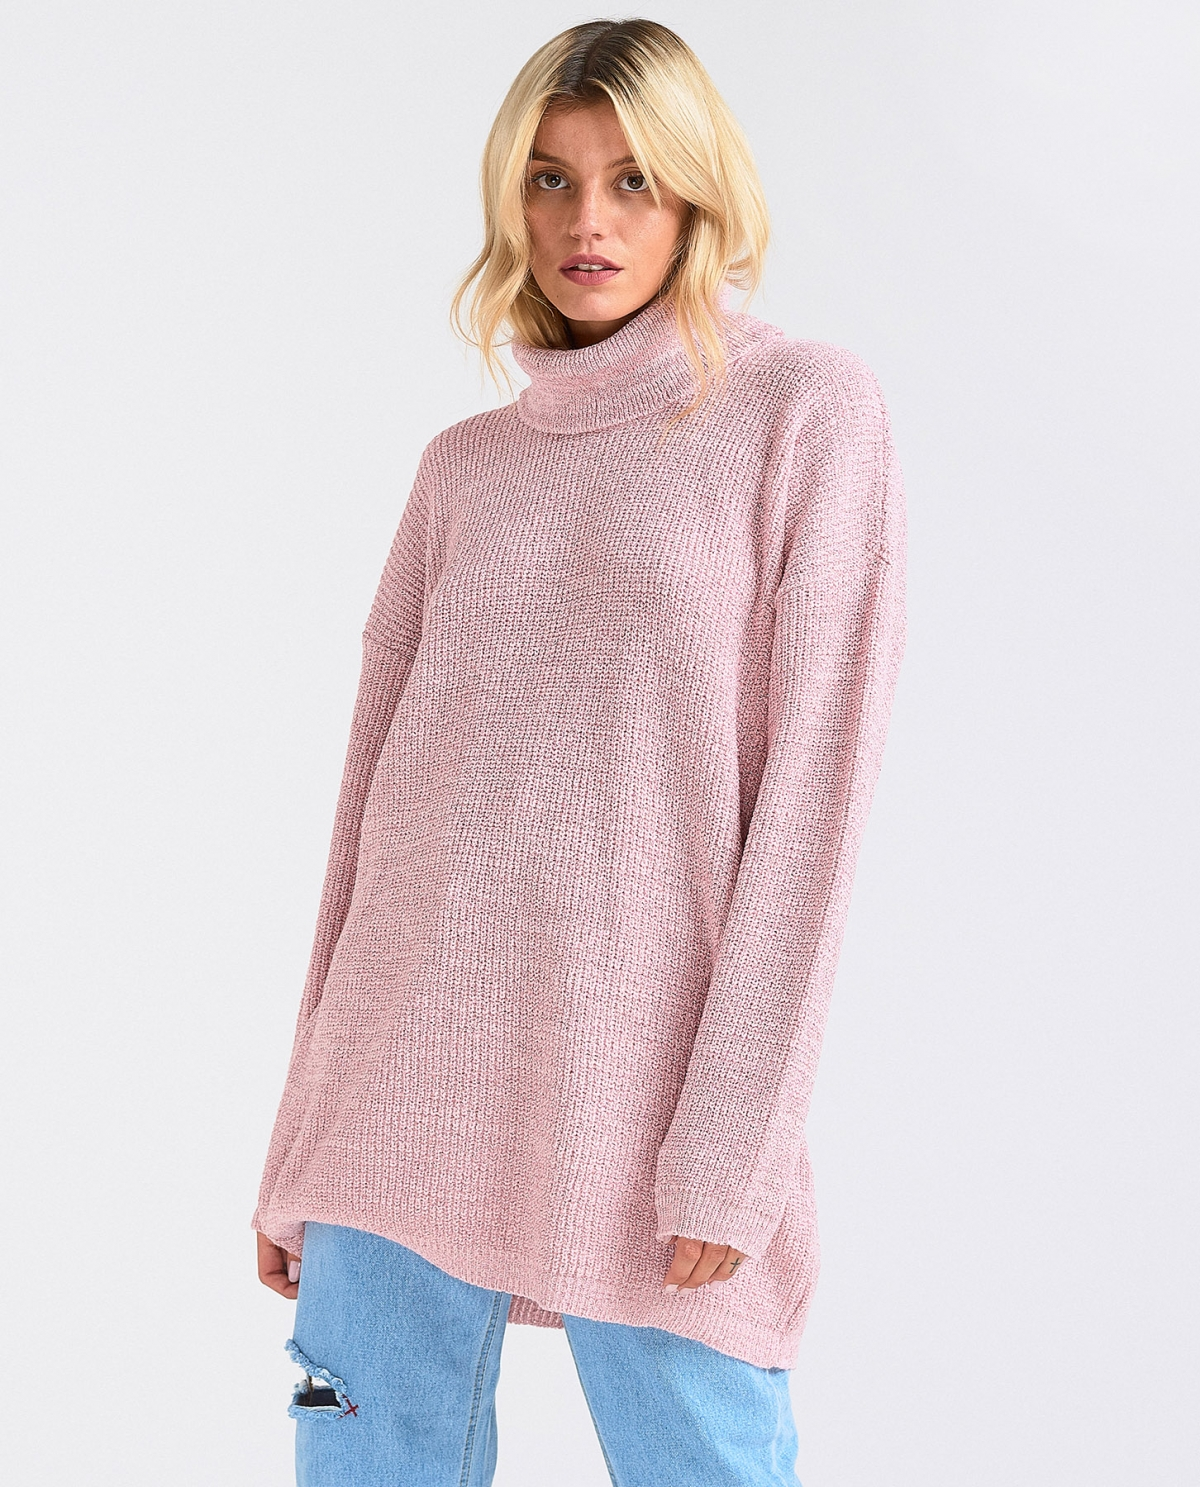 Loose Turtleneck Pink Lurex Sweater